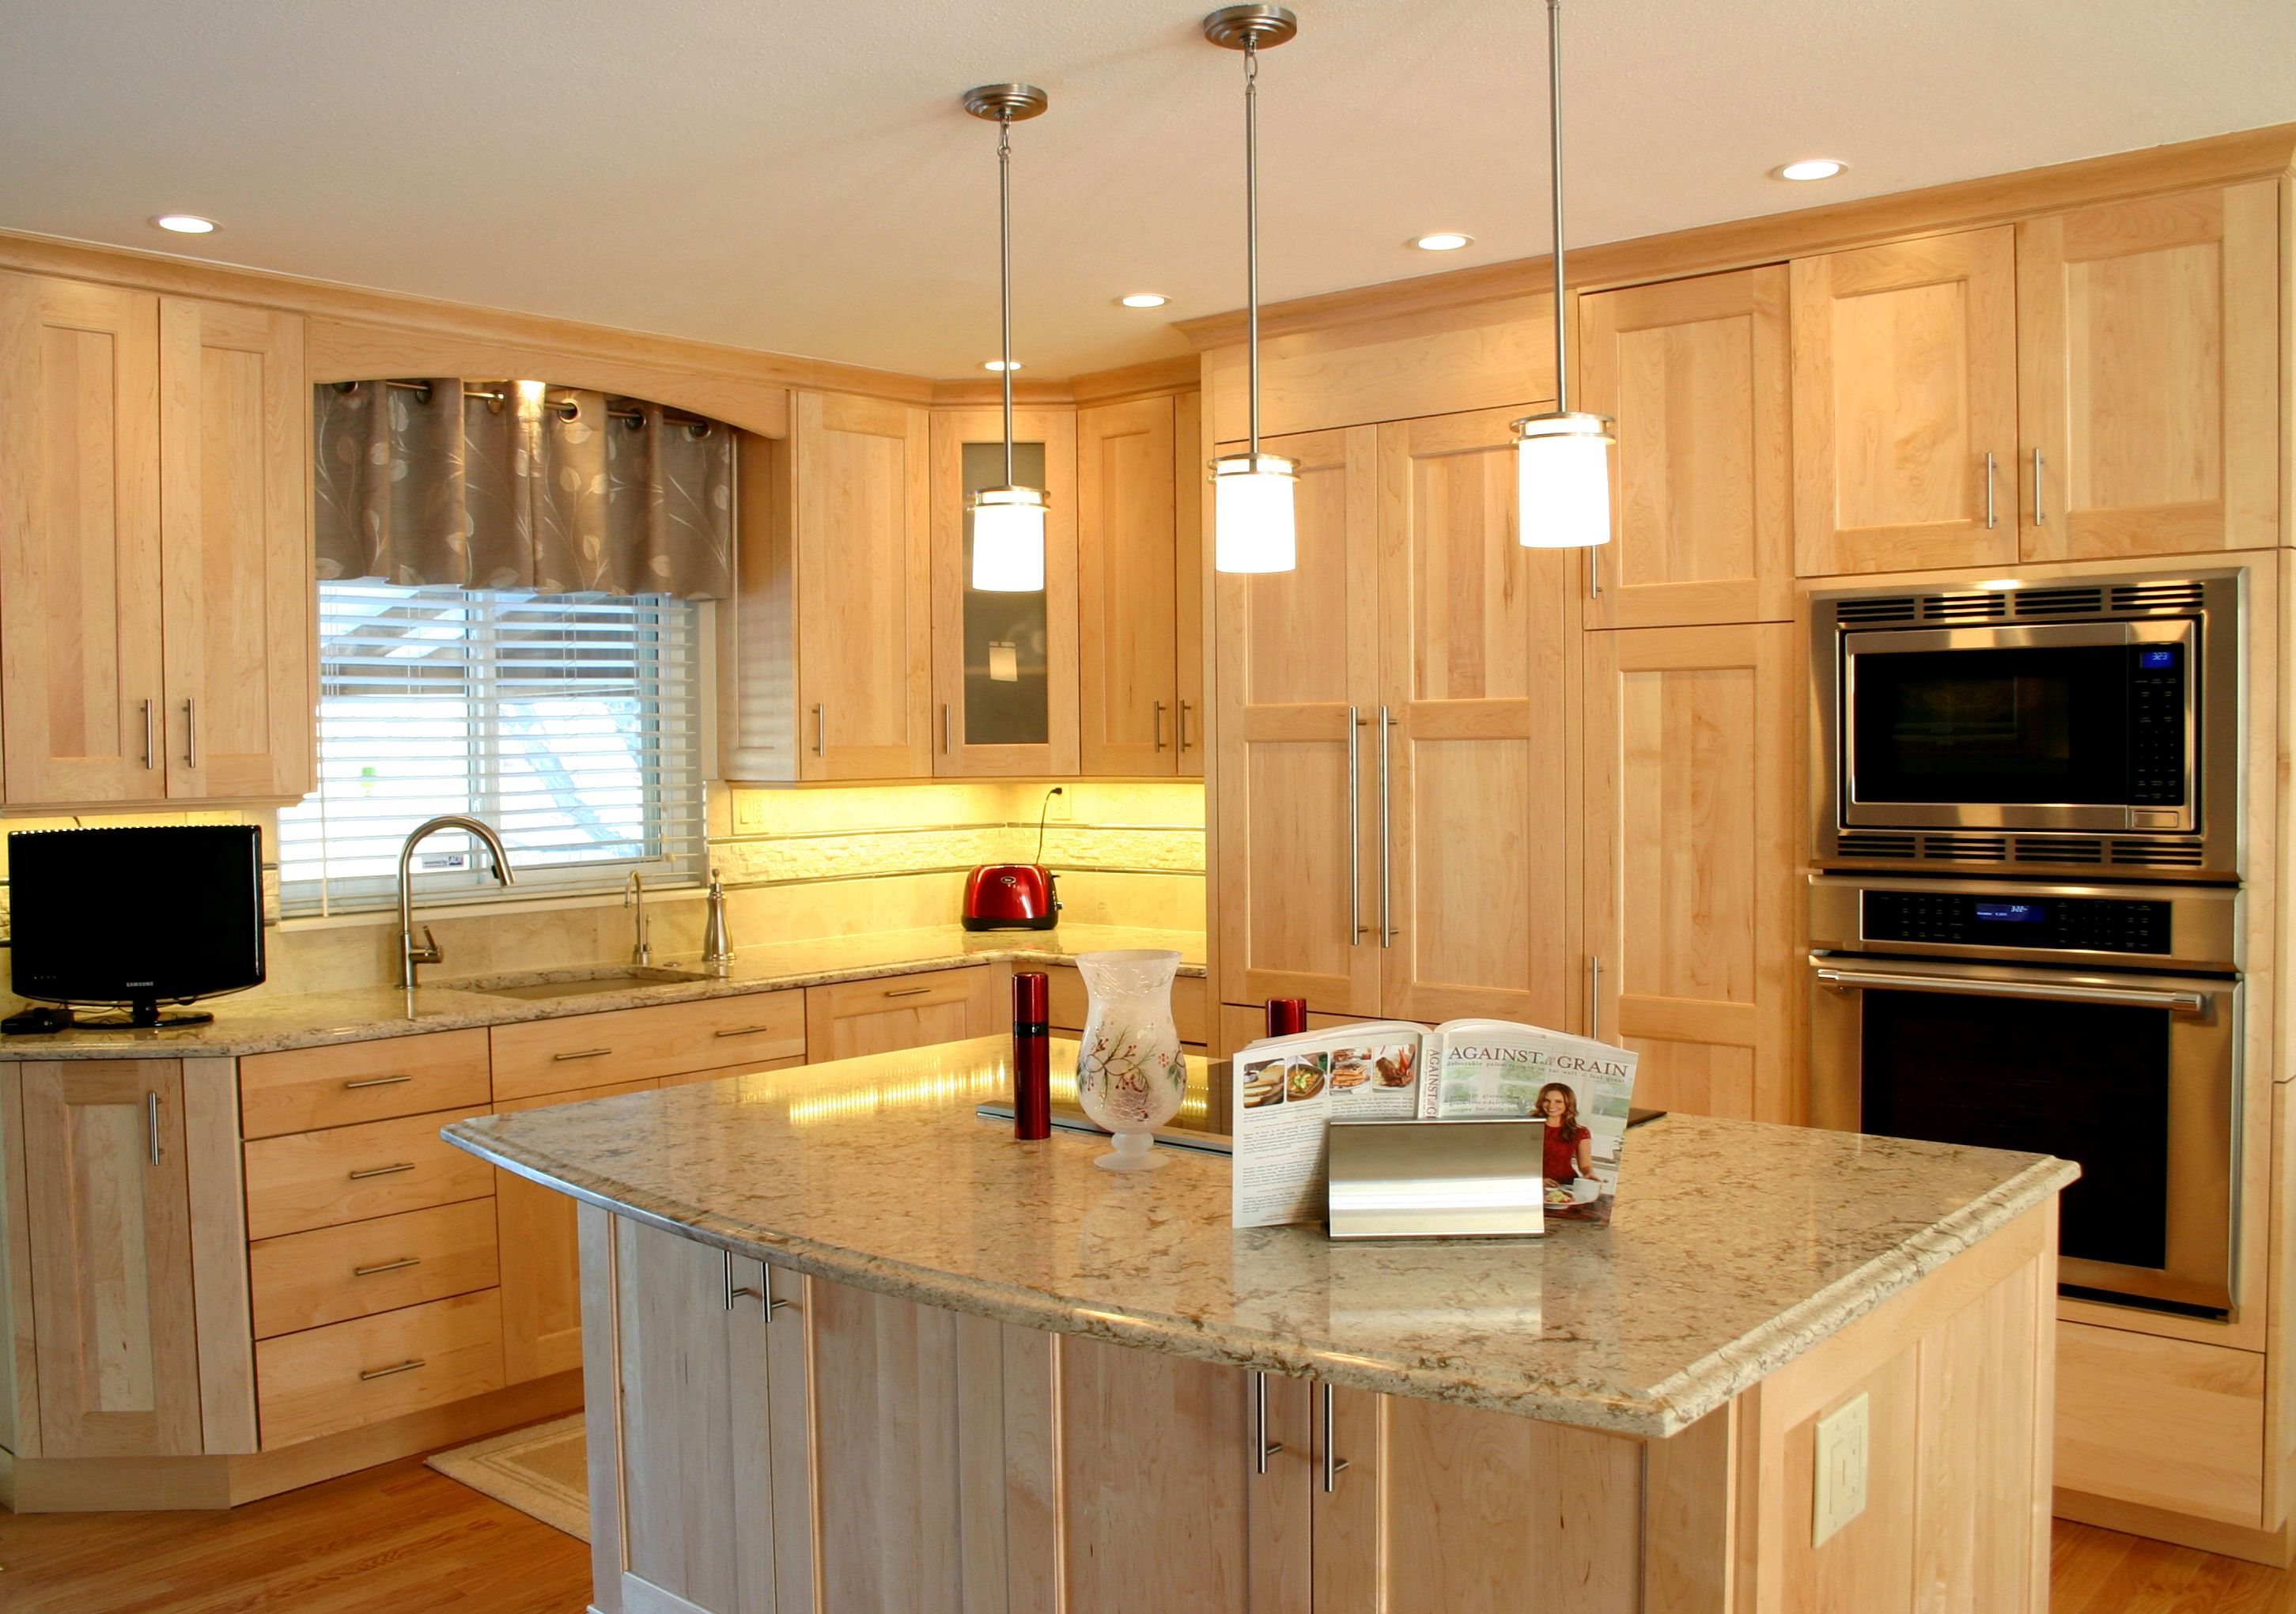 Maple Melamine Kitchen Cabinets Vs Wood Bkc Kitchen And Bath Kitchen Remodel Crystal Cabinet